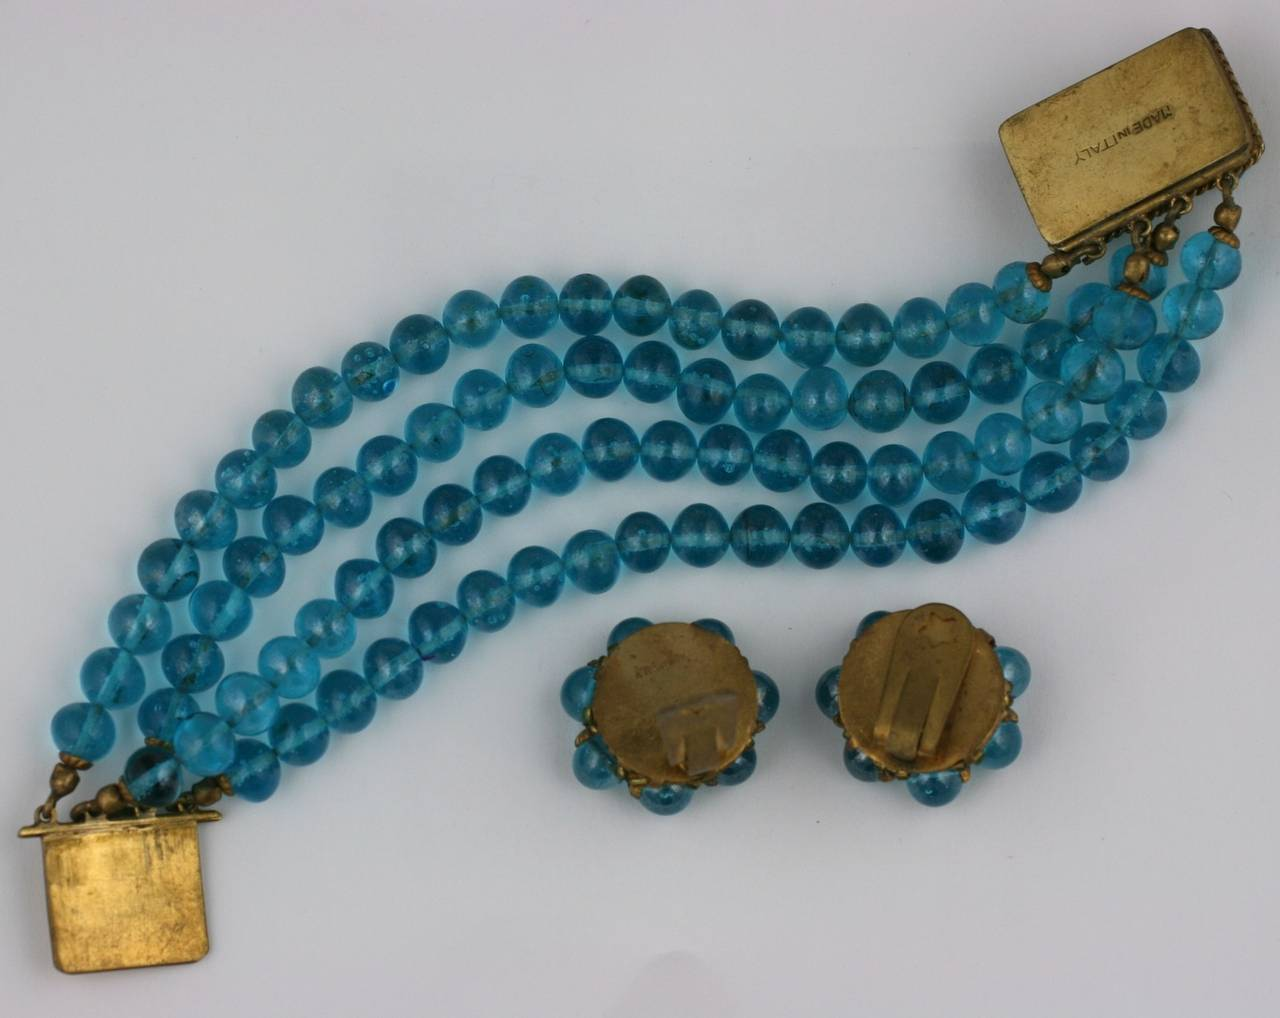 Coppola e Toppo Aqua Glass Demi Parure. Composed of dark aqua glass bead earclips and a four strand dark aqua glass bead bracelet with decorated gilt clasp. Excellent condition. Unsigned. 